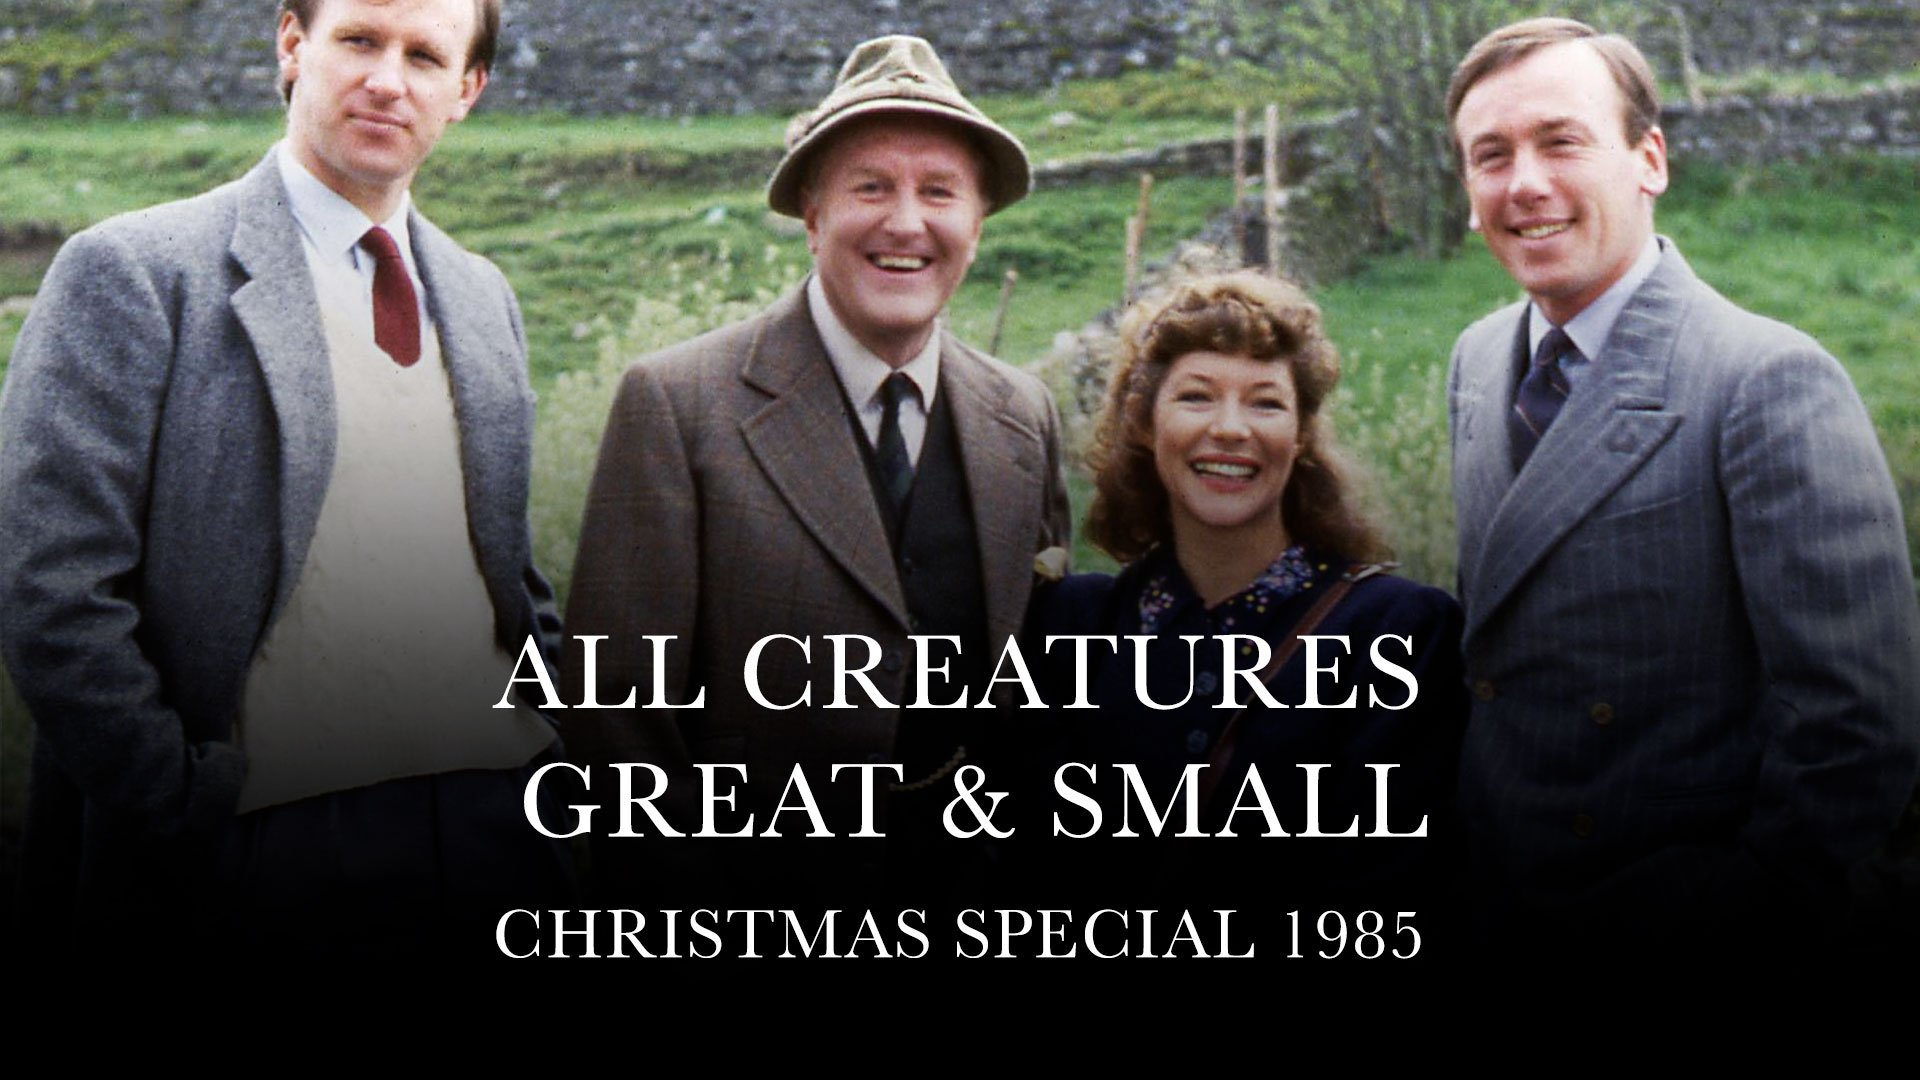 All Creatures Great and Small Christmas Special 1985 on BritBox UK